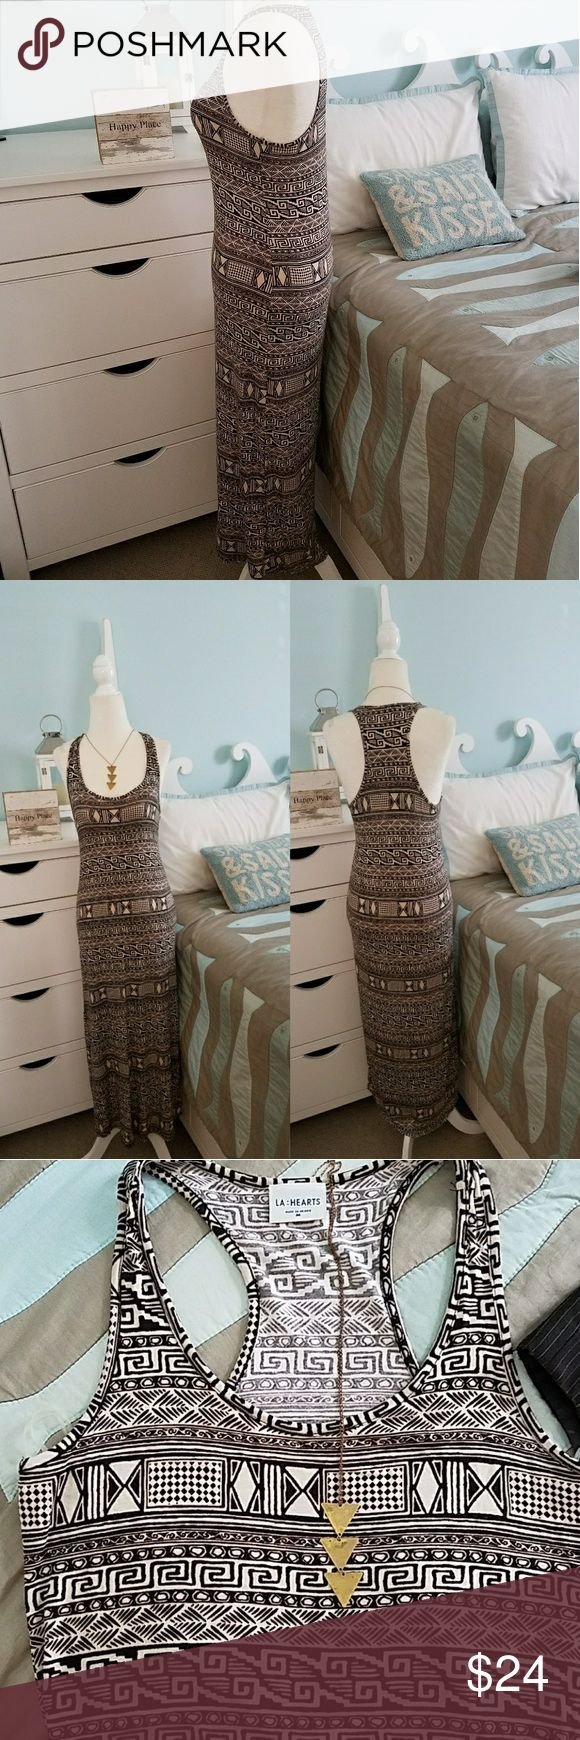 Aztec pattern LA Hearts racetrack maxi dress This dress is in used yet like new condition, very cute pattern and made of rayon and spandex so it is super stretchy and comfy. Maxi dress is in size medium with a cute racerback back. Dress is perfect for vacations the beach or could even be dressed up for a night out.  Armpit to armpit measurement laying flat is 16 in and length is 48 in. La Hearts Dresses Maxi